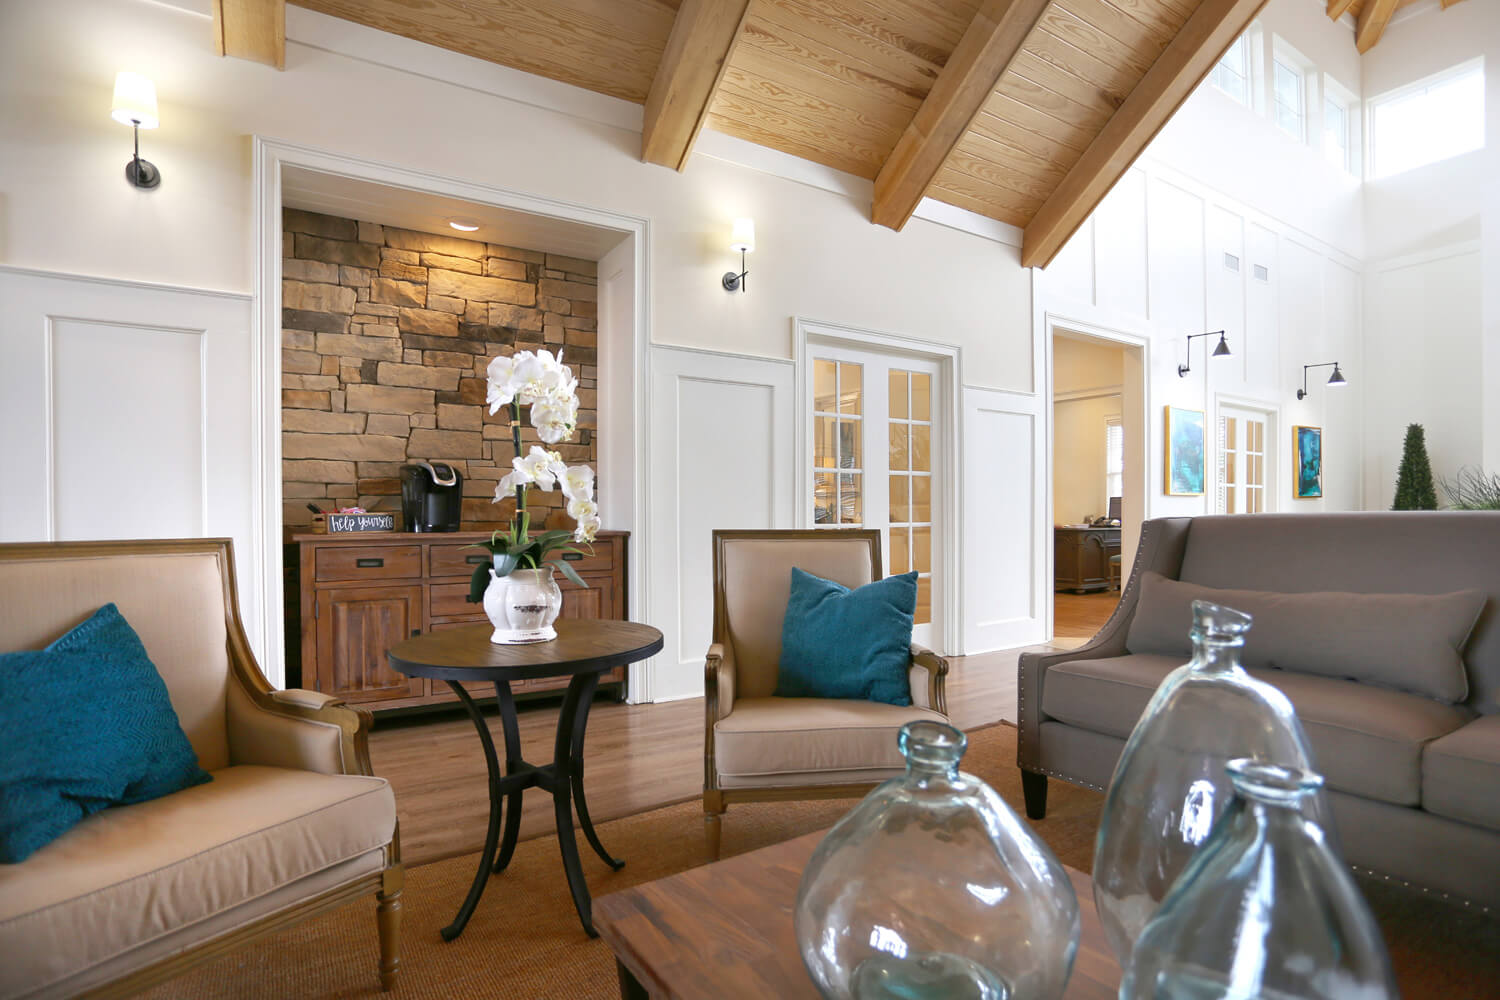 The Morgan Apartments Clubhouse Designed by Foshee Architecture - View of Central Seating Area